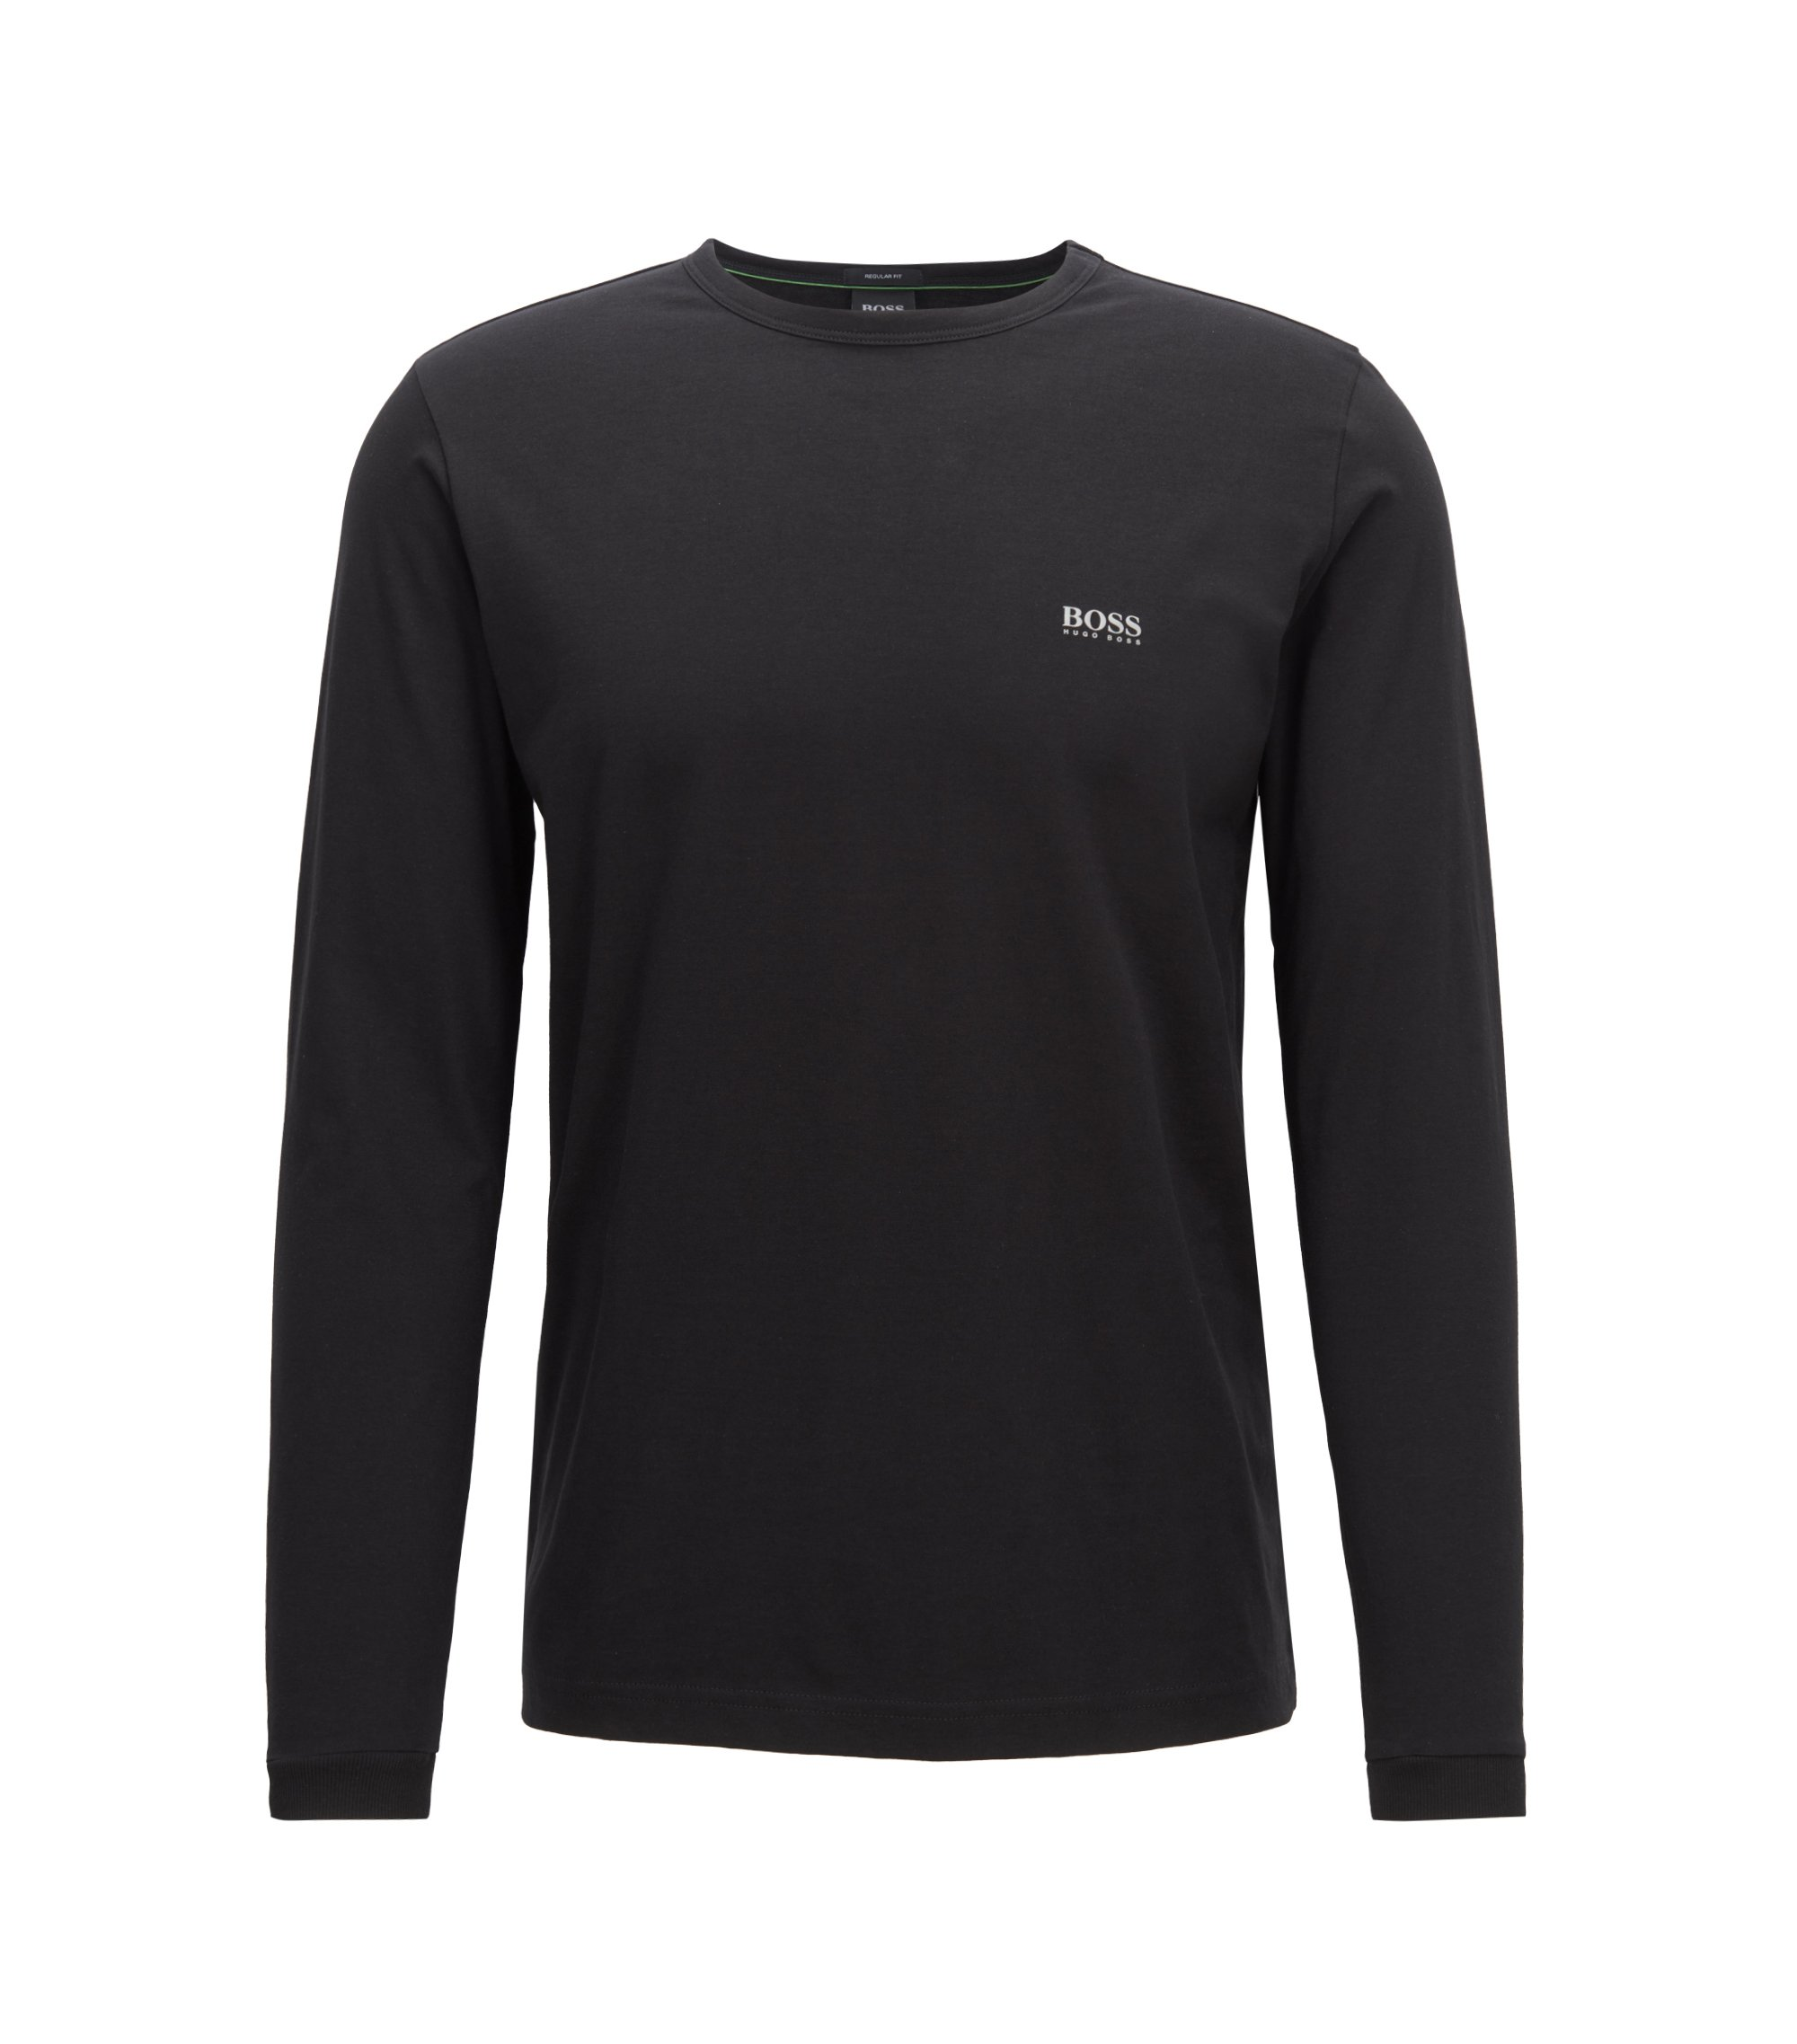 Long-sleeved cotton T-shirt with shoulder logo, Black